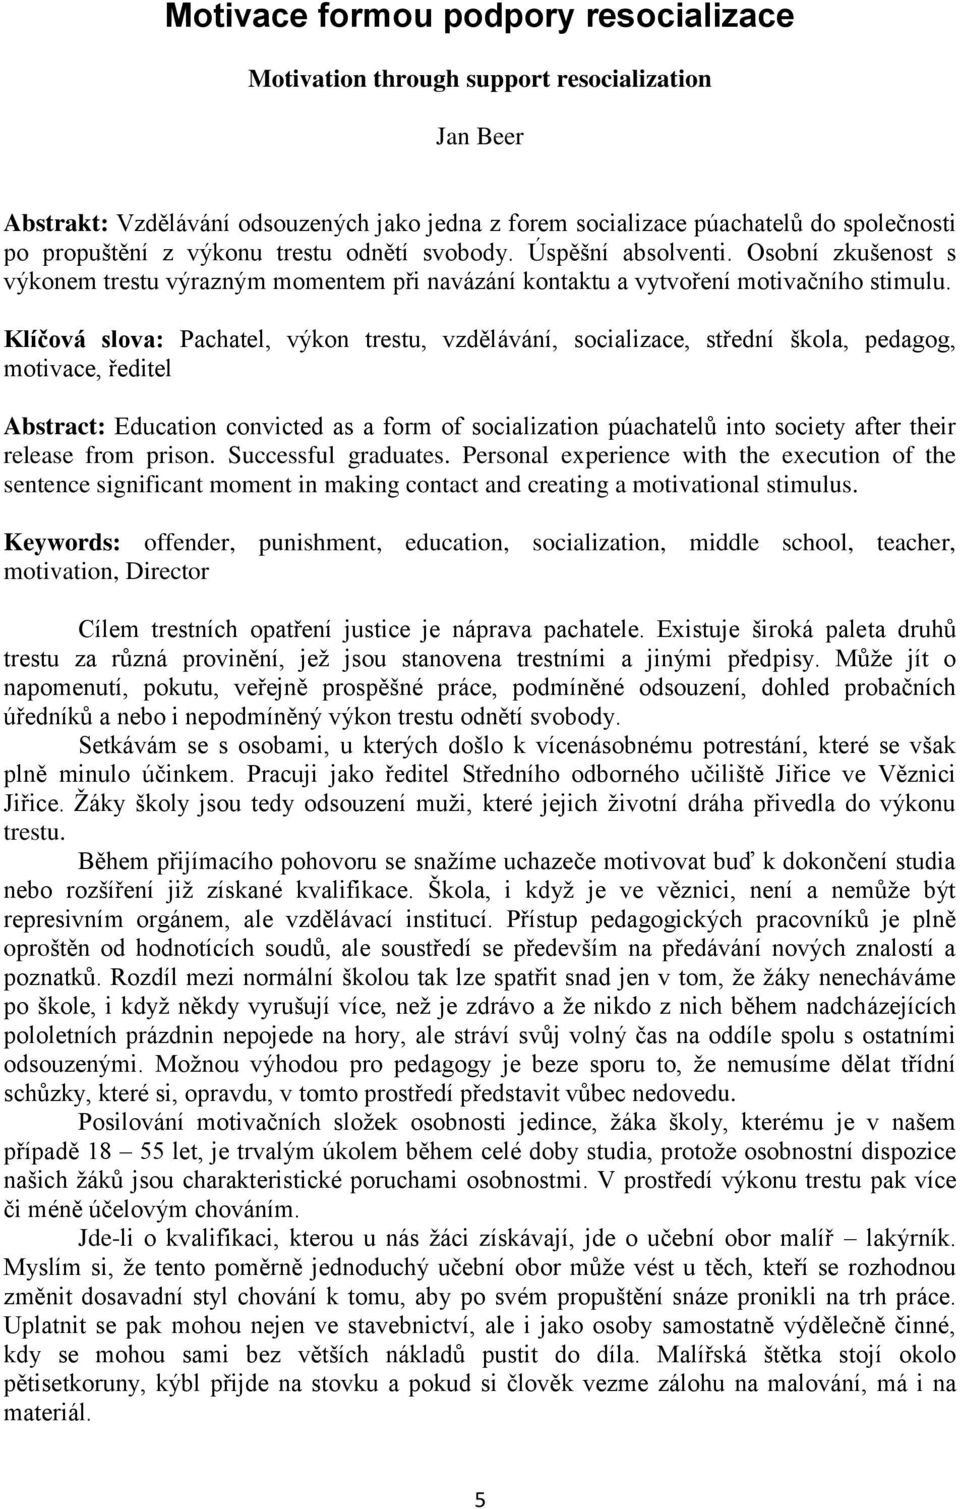 Klíčová slova: Pachatel, výkon trestu, vzdělávání, socializace, střední škola, pedagog, motivace, ředitel Abstract: Education convicted as a form of socialization púachatelů into society after their